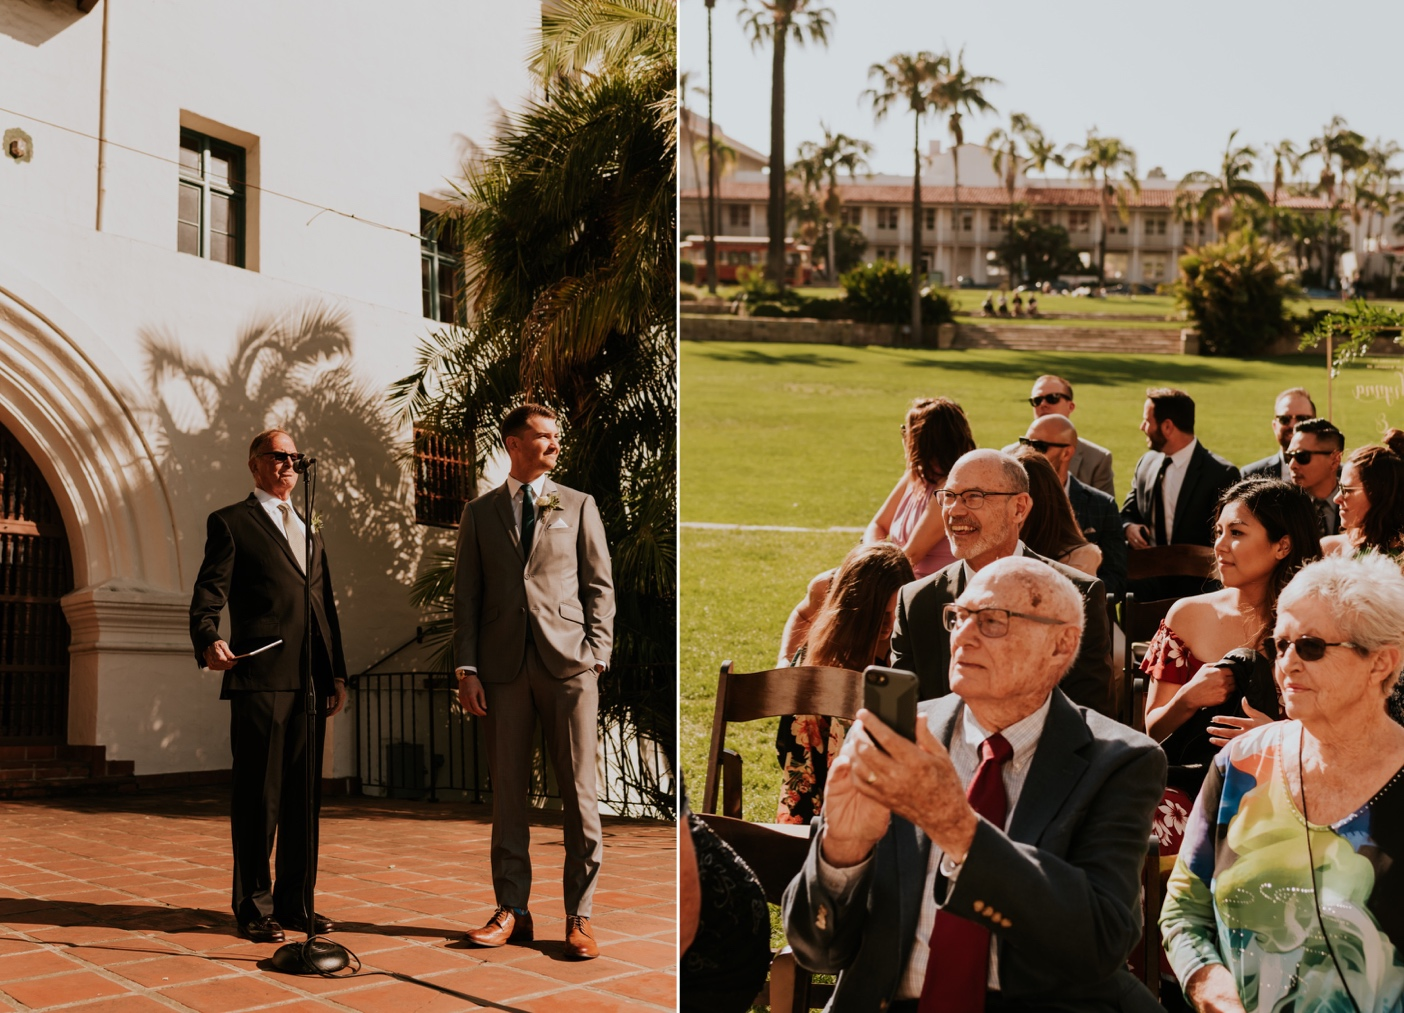 059_chynna-chris-santa-barbara-wedding-672_chynna-chris-santa-barbara-wedding-690.jpg